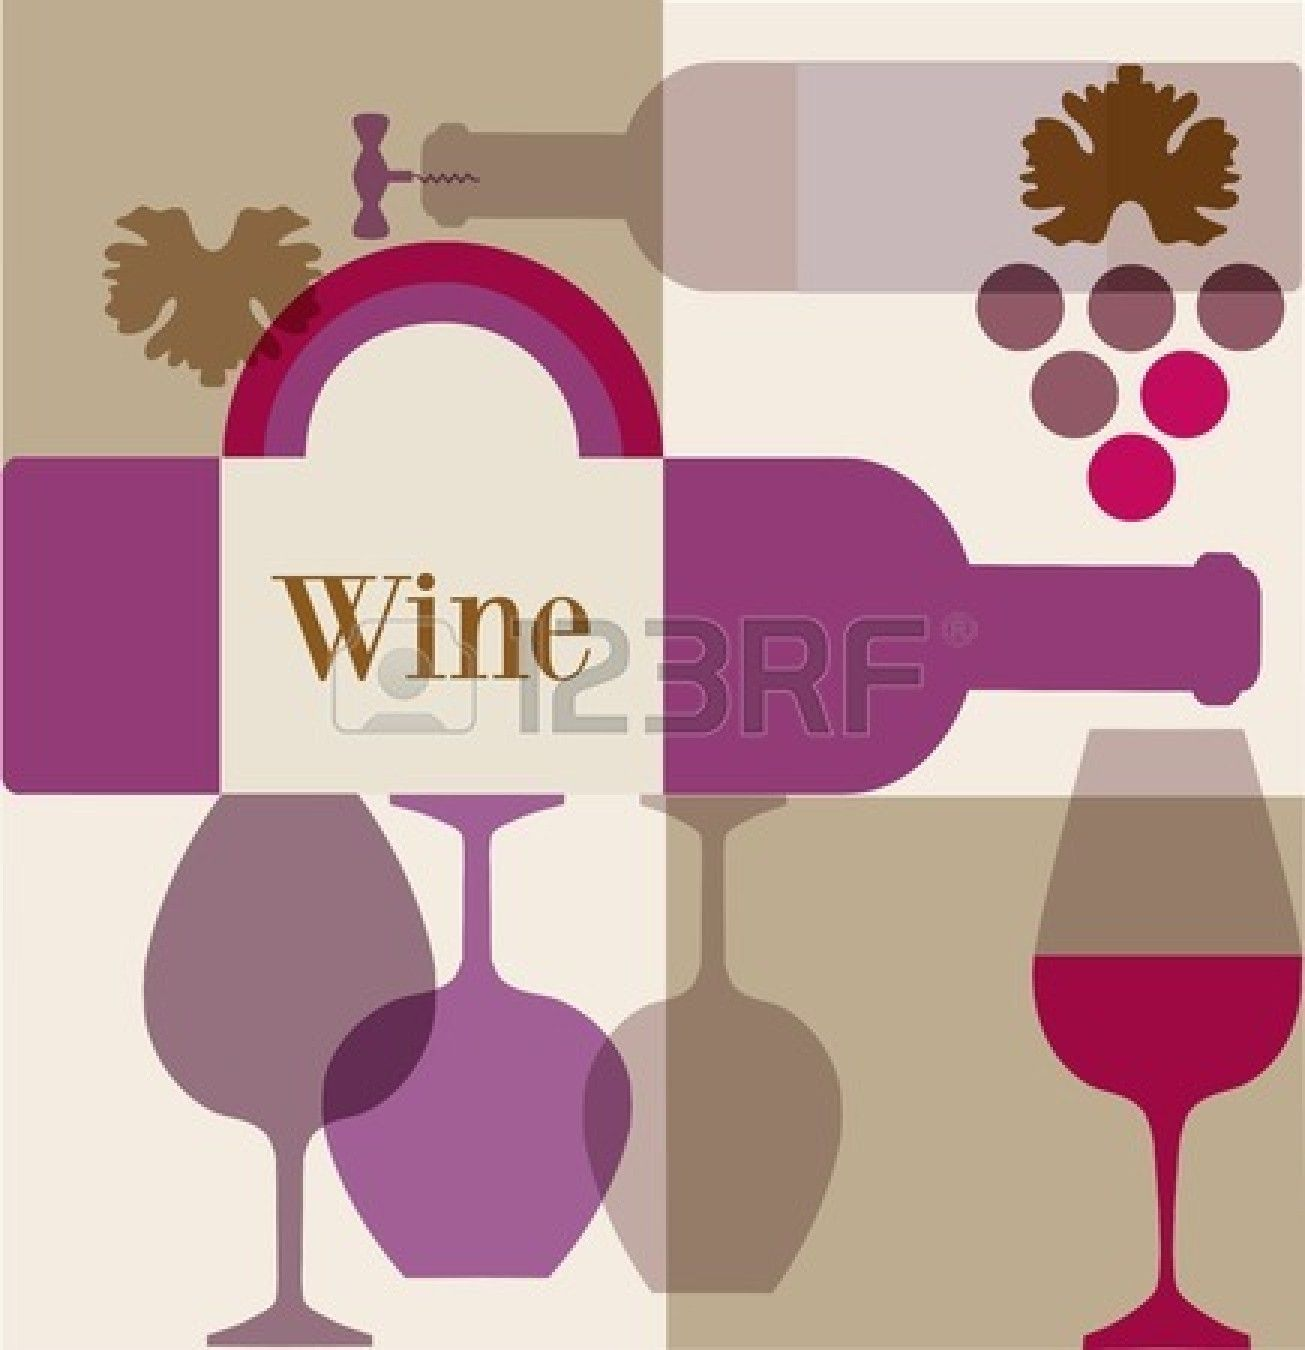 Keuken Confessies Images For Gt Wine Label Design Templates Free Design